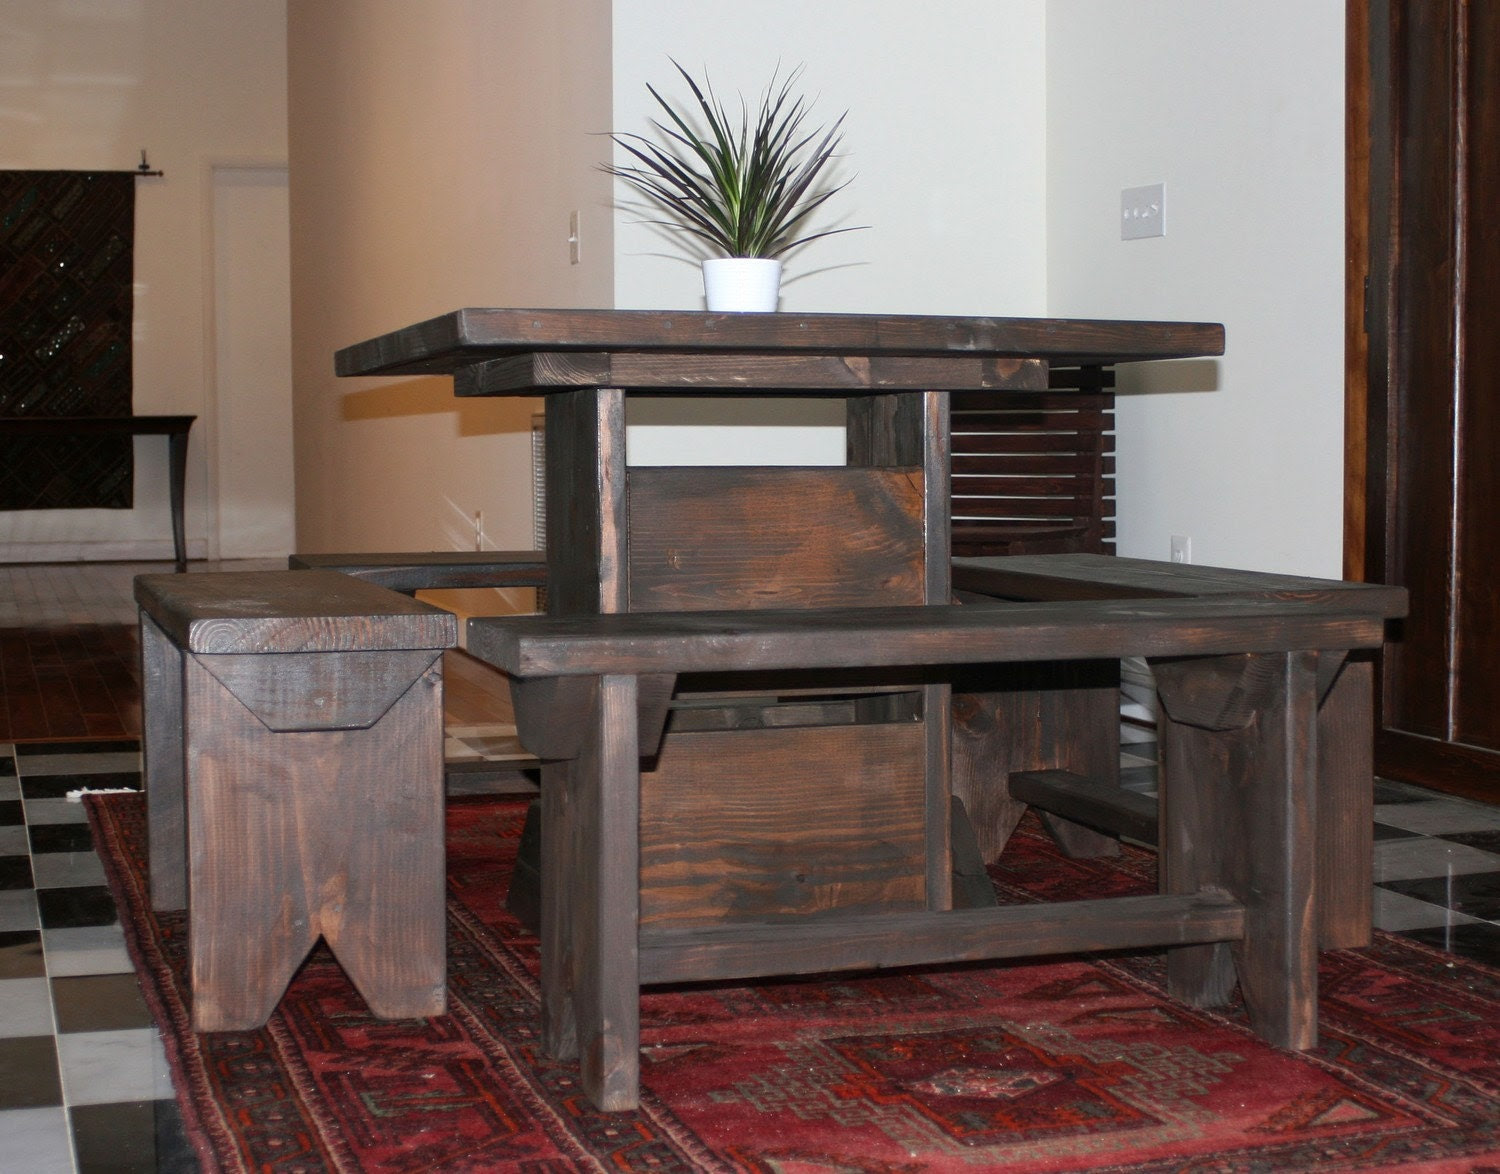 3 foot small dining room set for 4 / dinette set for by ModernRust